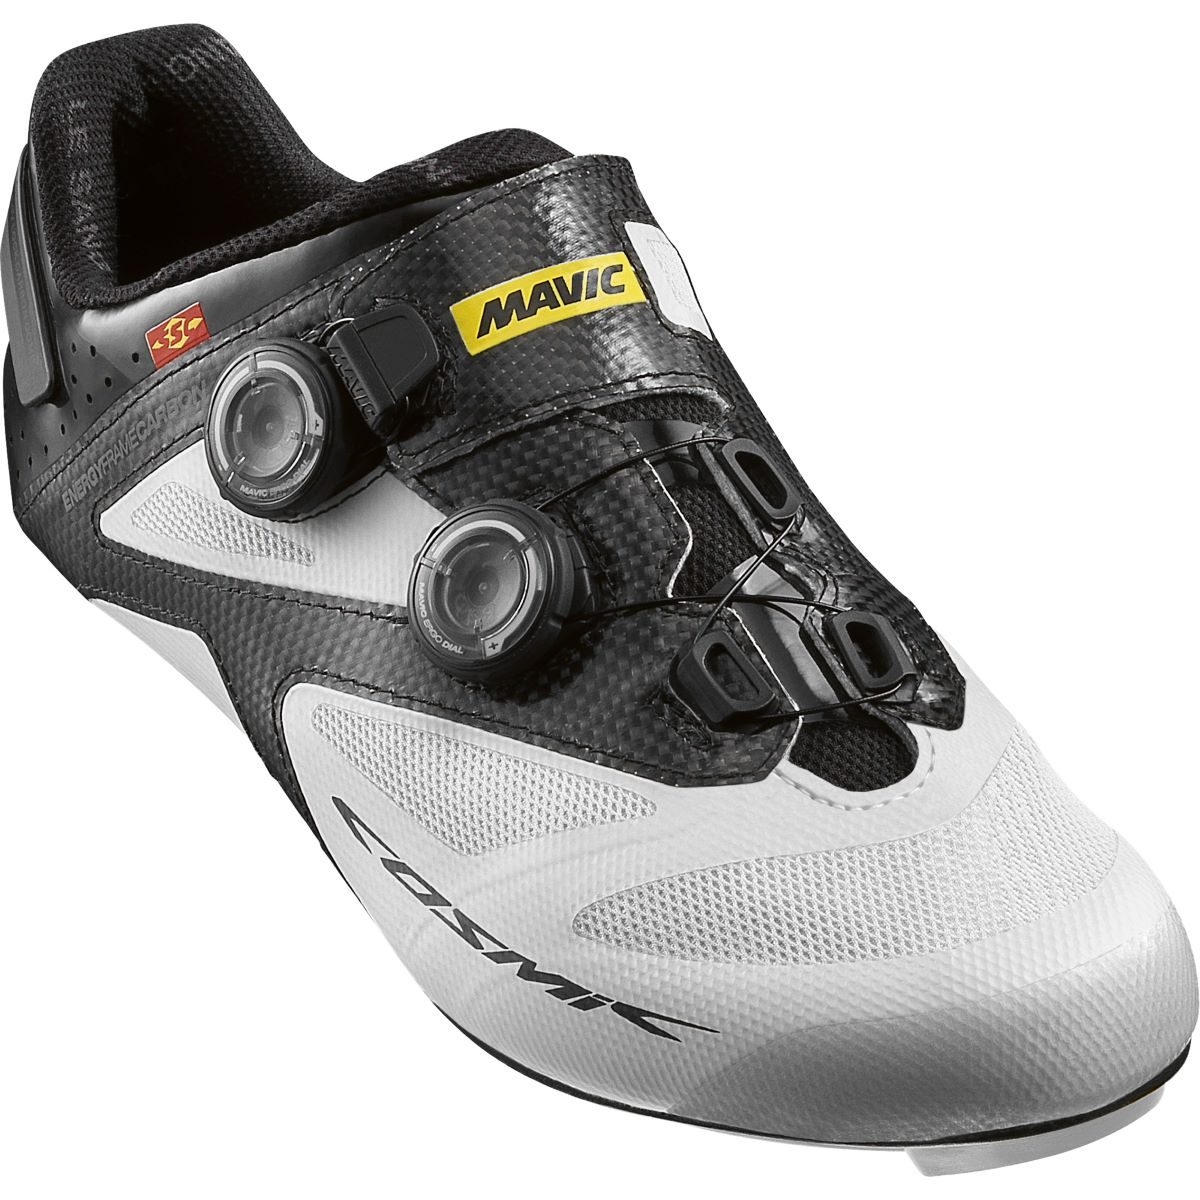 Zapatillas de carretera Mavic Cosmic Ultimate II - Zapatillas de ciclismo